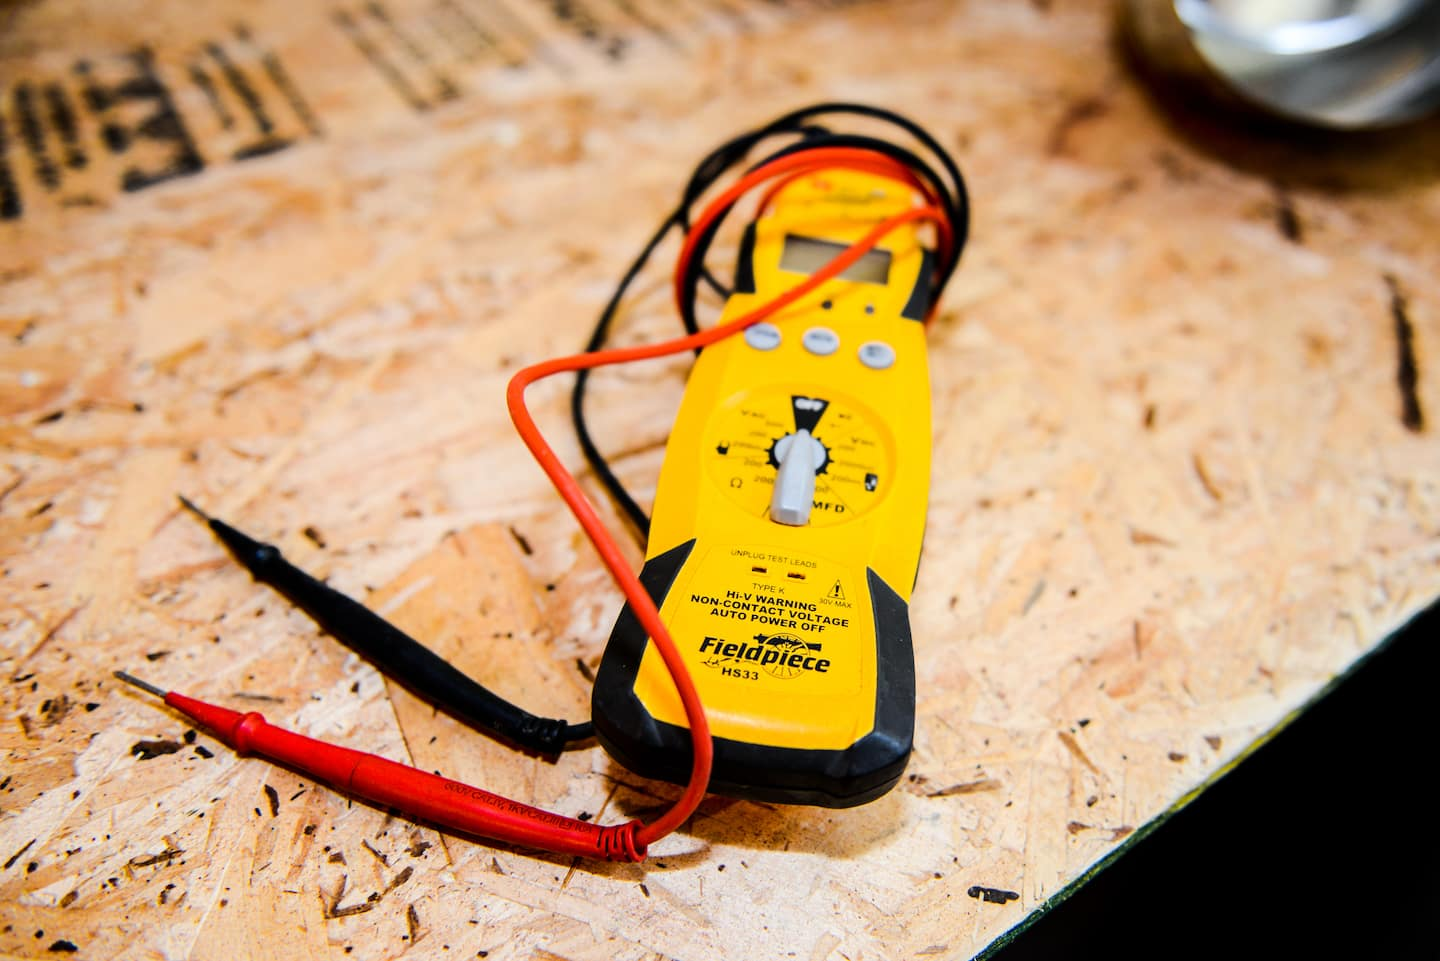 What should you expect to earn as an electrician's apprentice?